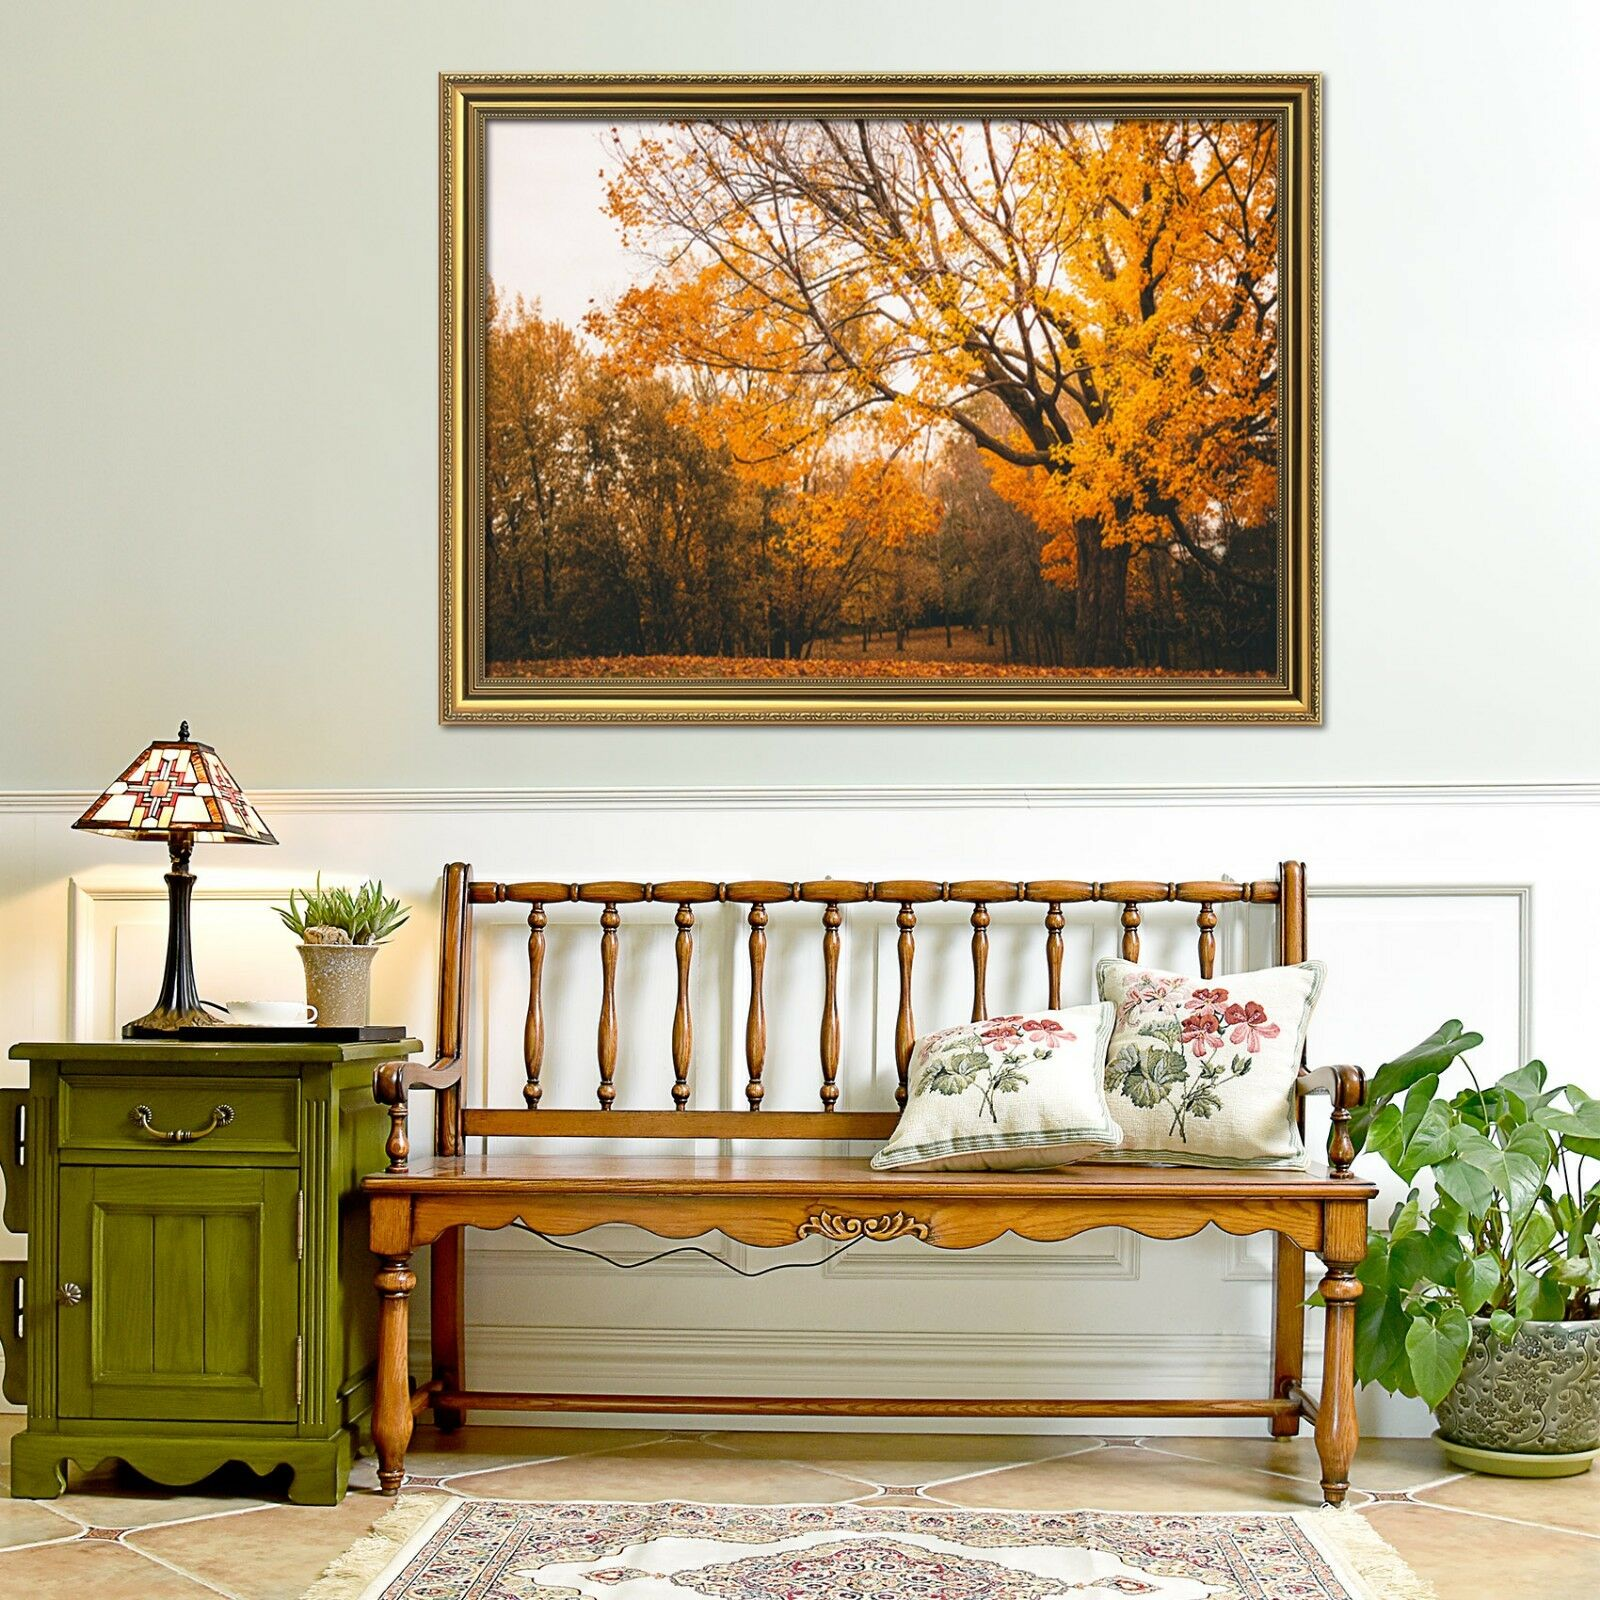 3D gold Yellow Tree Leaf 1 Framed Poster Home Decor Print Painting Art WALLPAPER